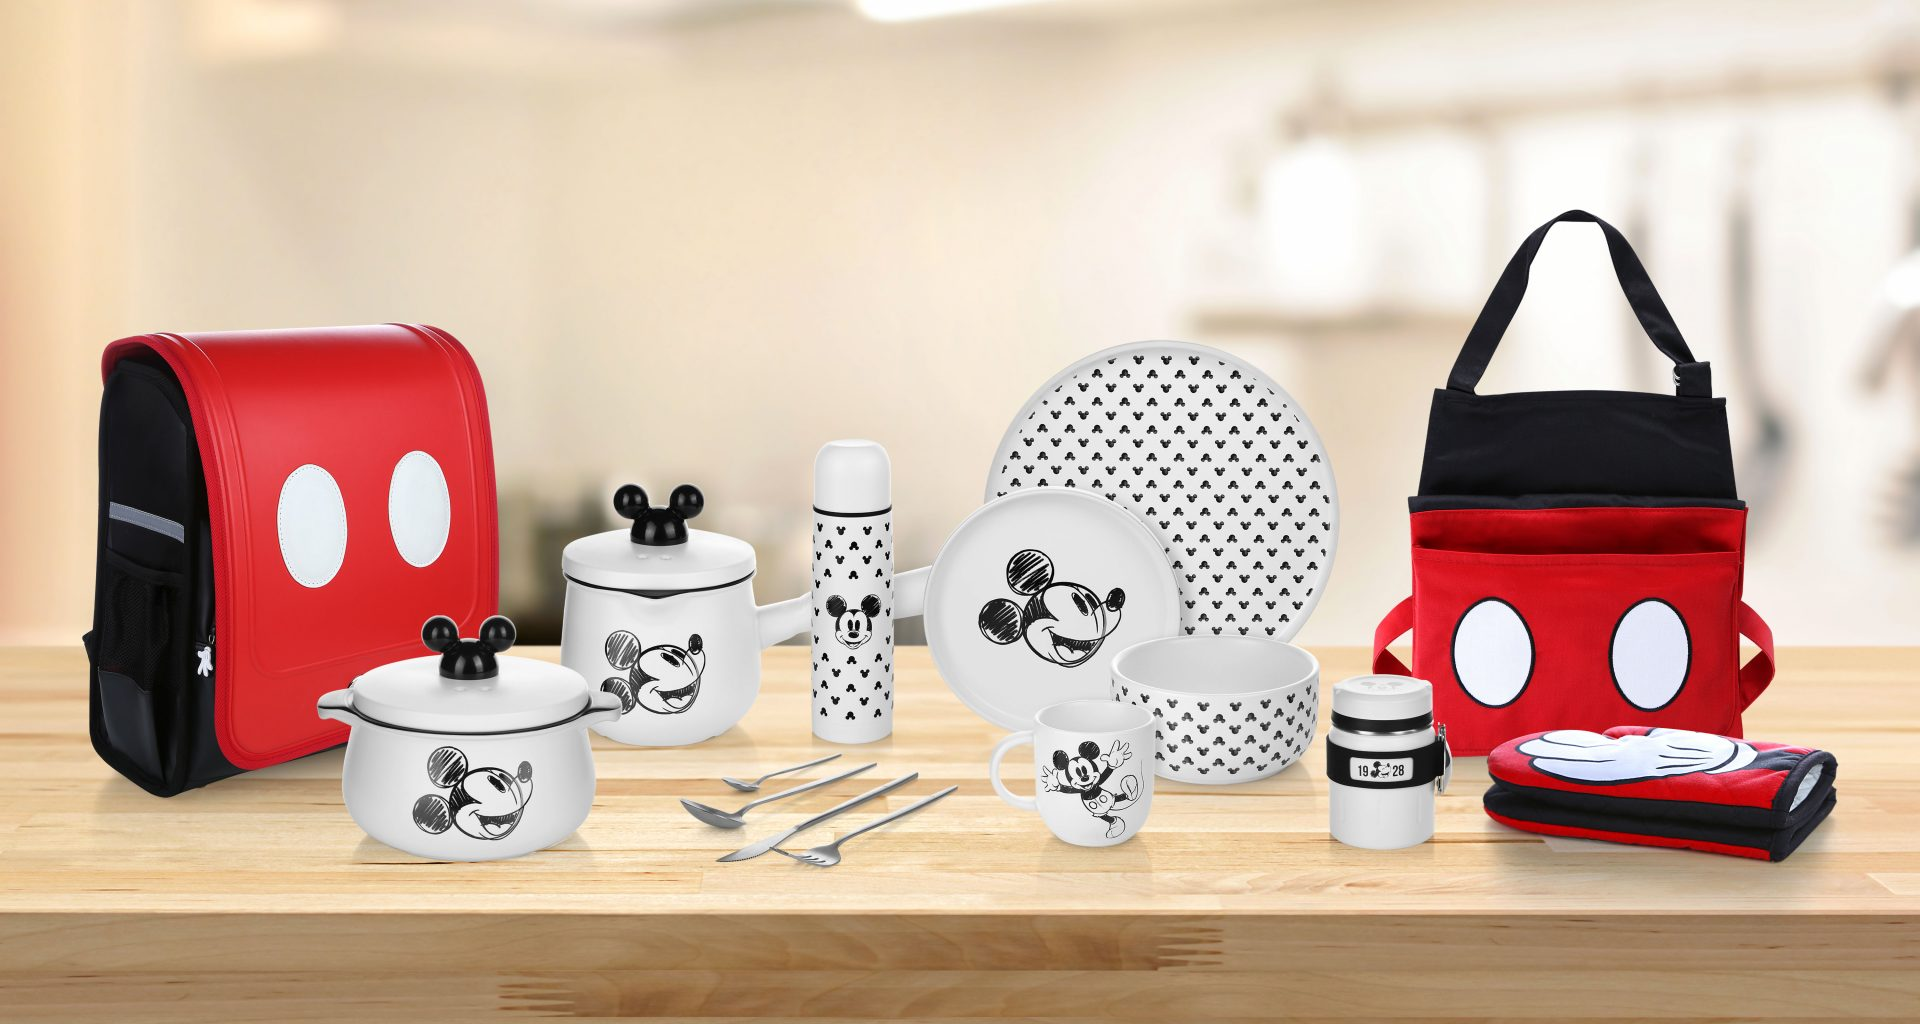 Bring fun into your kitchen with this limited-edition Mickey Mouse Collection available exclusively at NTUC FairPrice! - Alvinology